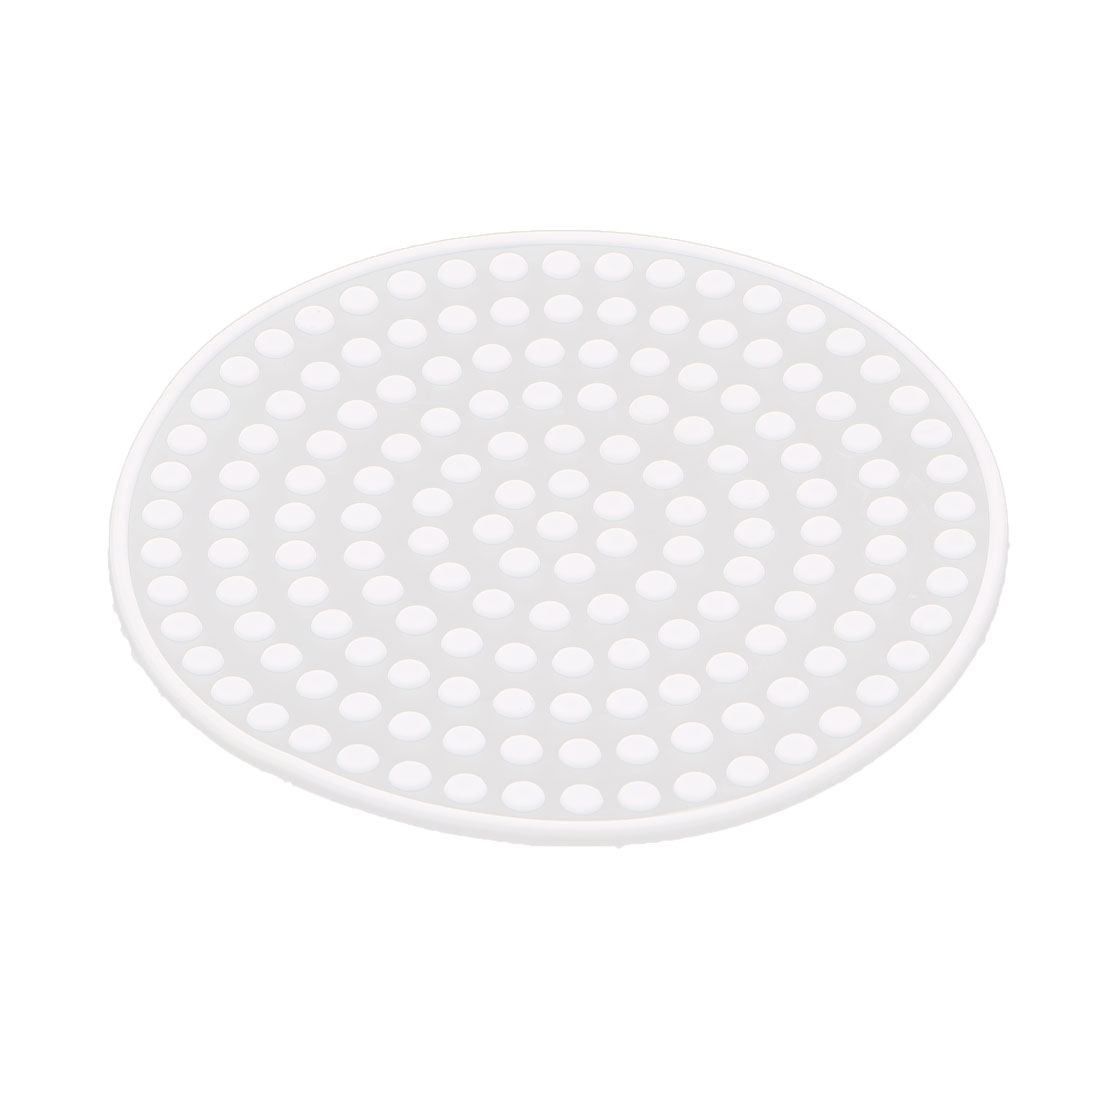 Silicone Round Shape Dots Design Heat Resistant Cup Bowl Mat Pad Coaster White